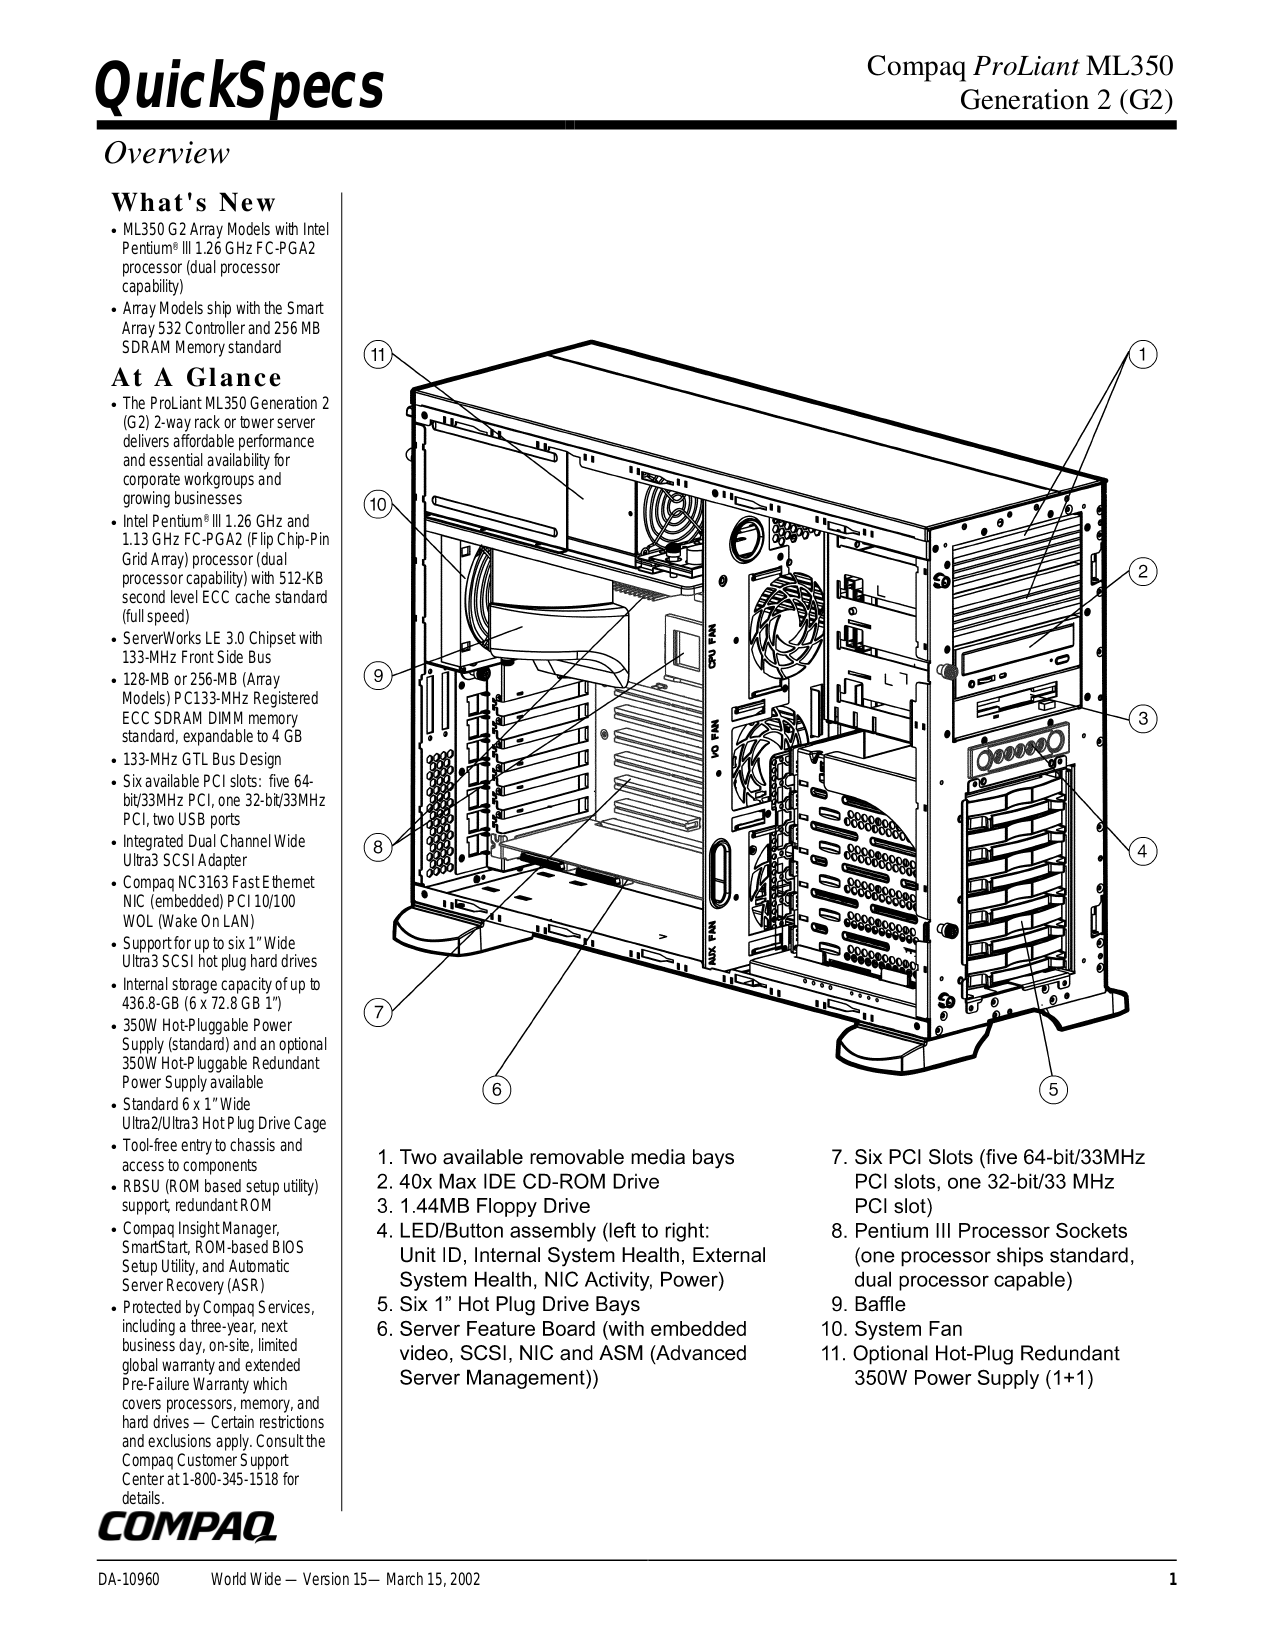 dcc wiring diagram pdf with Shema Monitora 791 Pdf 15008 on 30   Generator Plug Wiring Diagram as well Acoustic Guitar Wiring Diagrams as well Tappan Electric Double Oven Parts Diagram further Railroad Schematic Symbols further American Flyer 302 Ac Wiring Diagram.